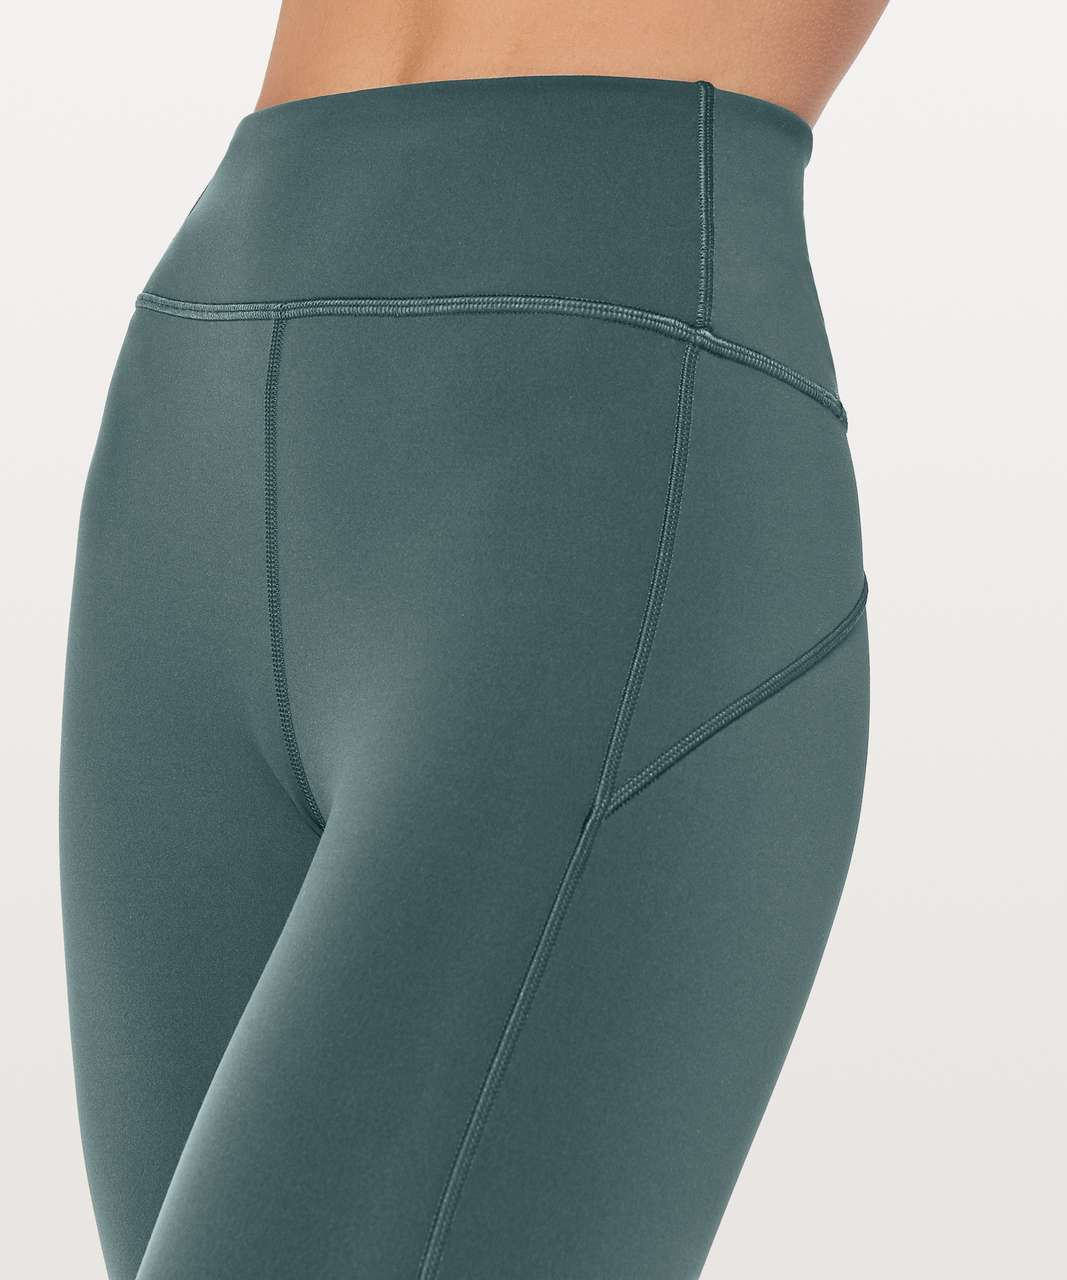 "Lululemon In Movement 7/8 Tight *Everlux 25"" - Gravity"